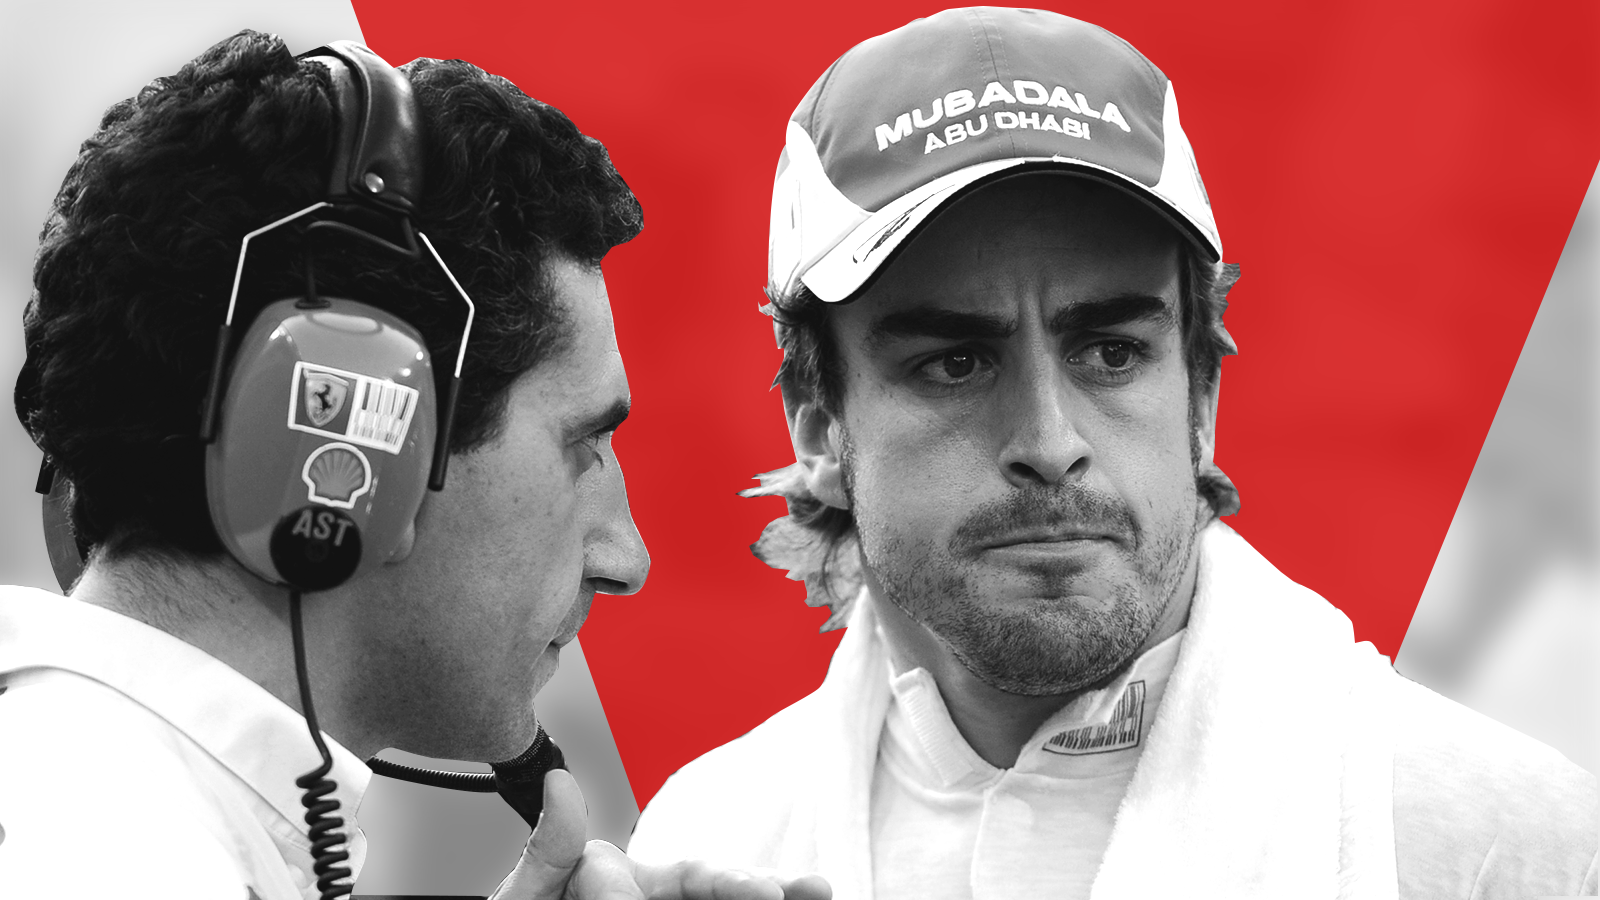 Fernando Alonso: The Ferrari years and the championships that got away